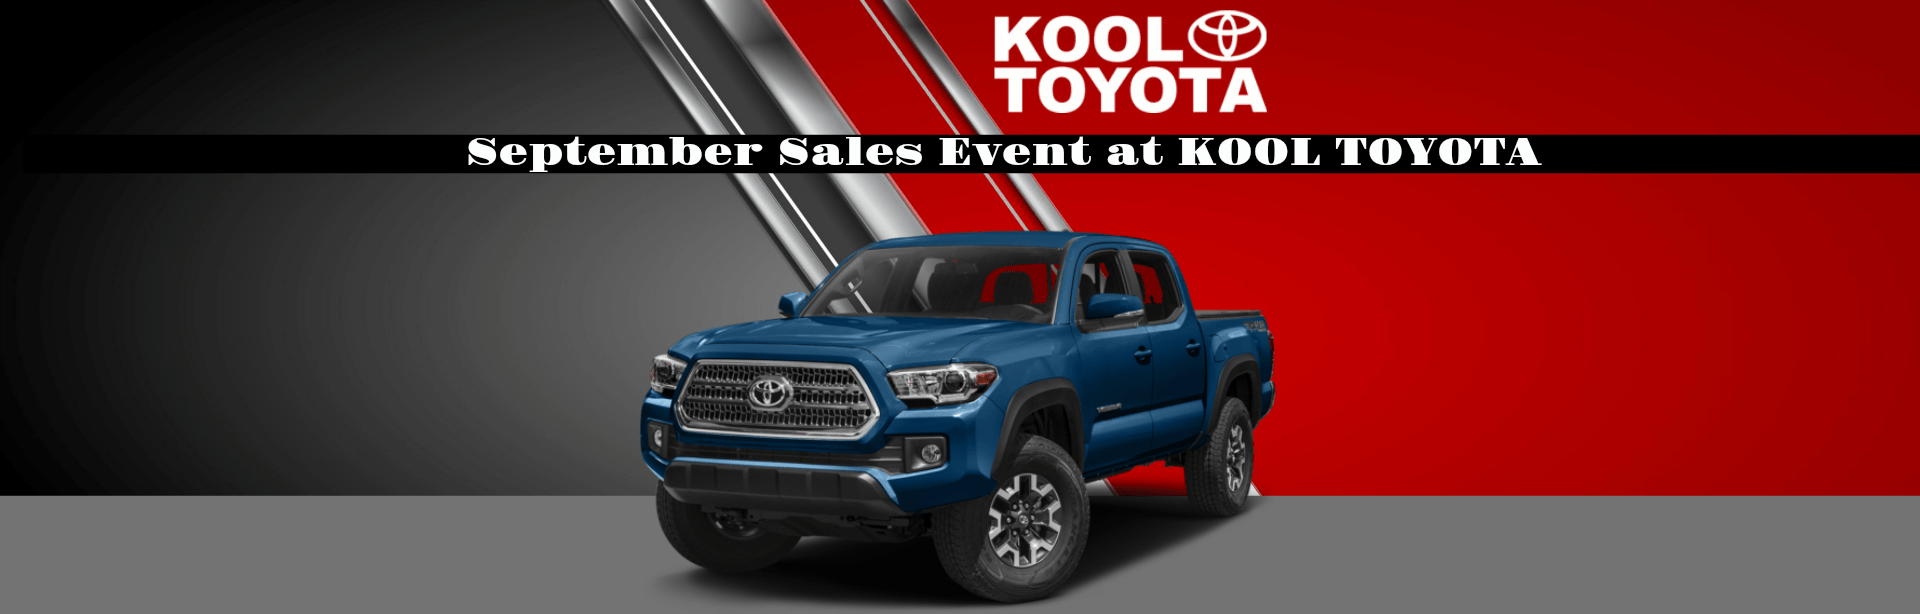 September Sales Event at KOOL TOYOTA